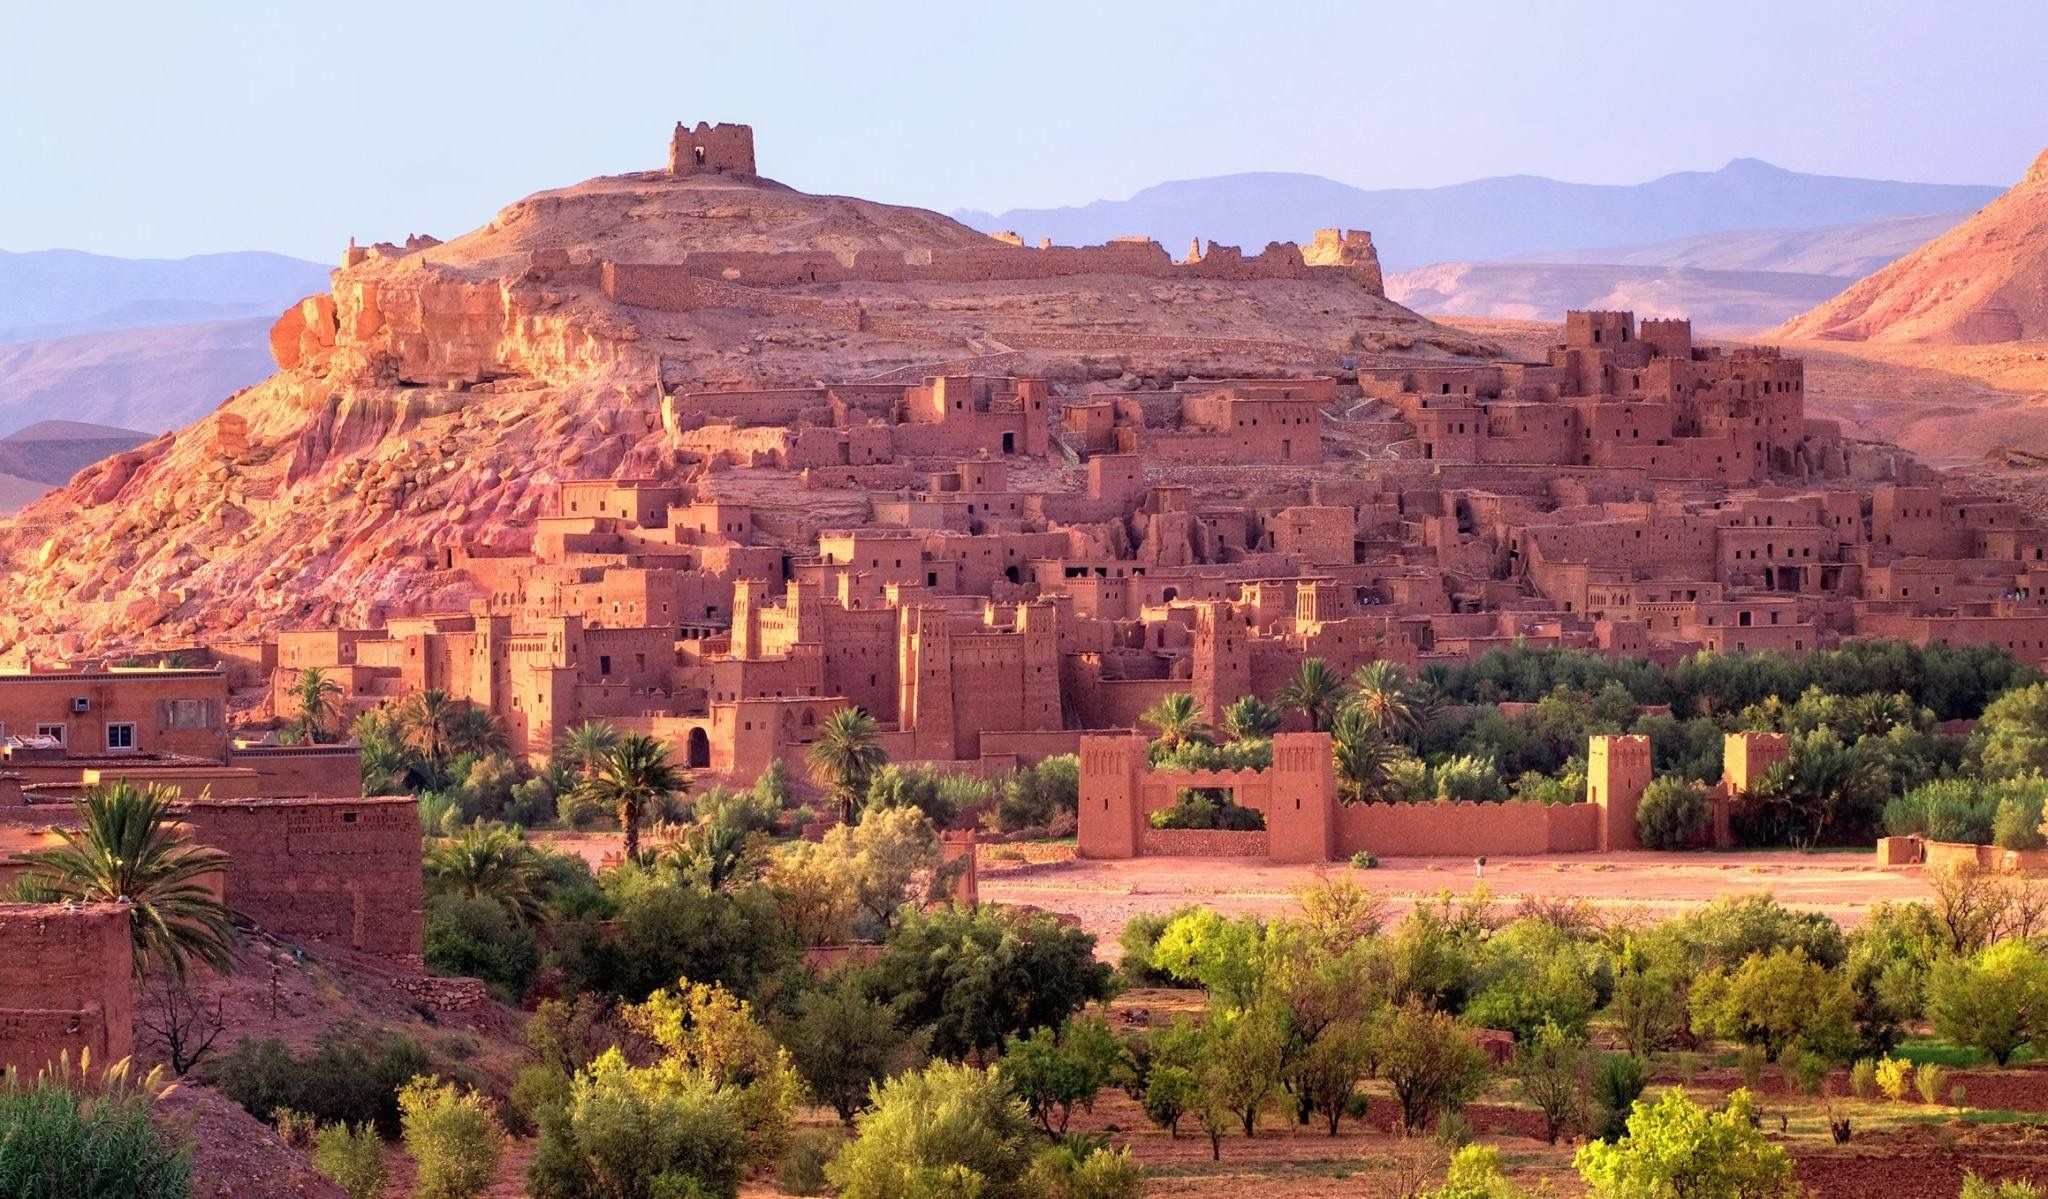 4-day Erg Chigaga Dunes Tour from Marrakech in Morocco